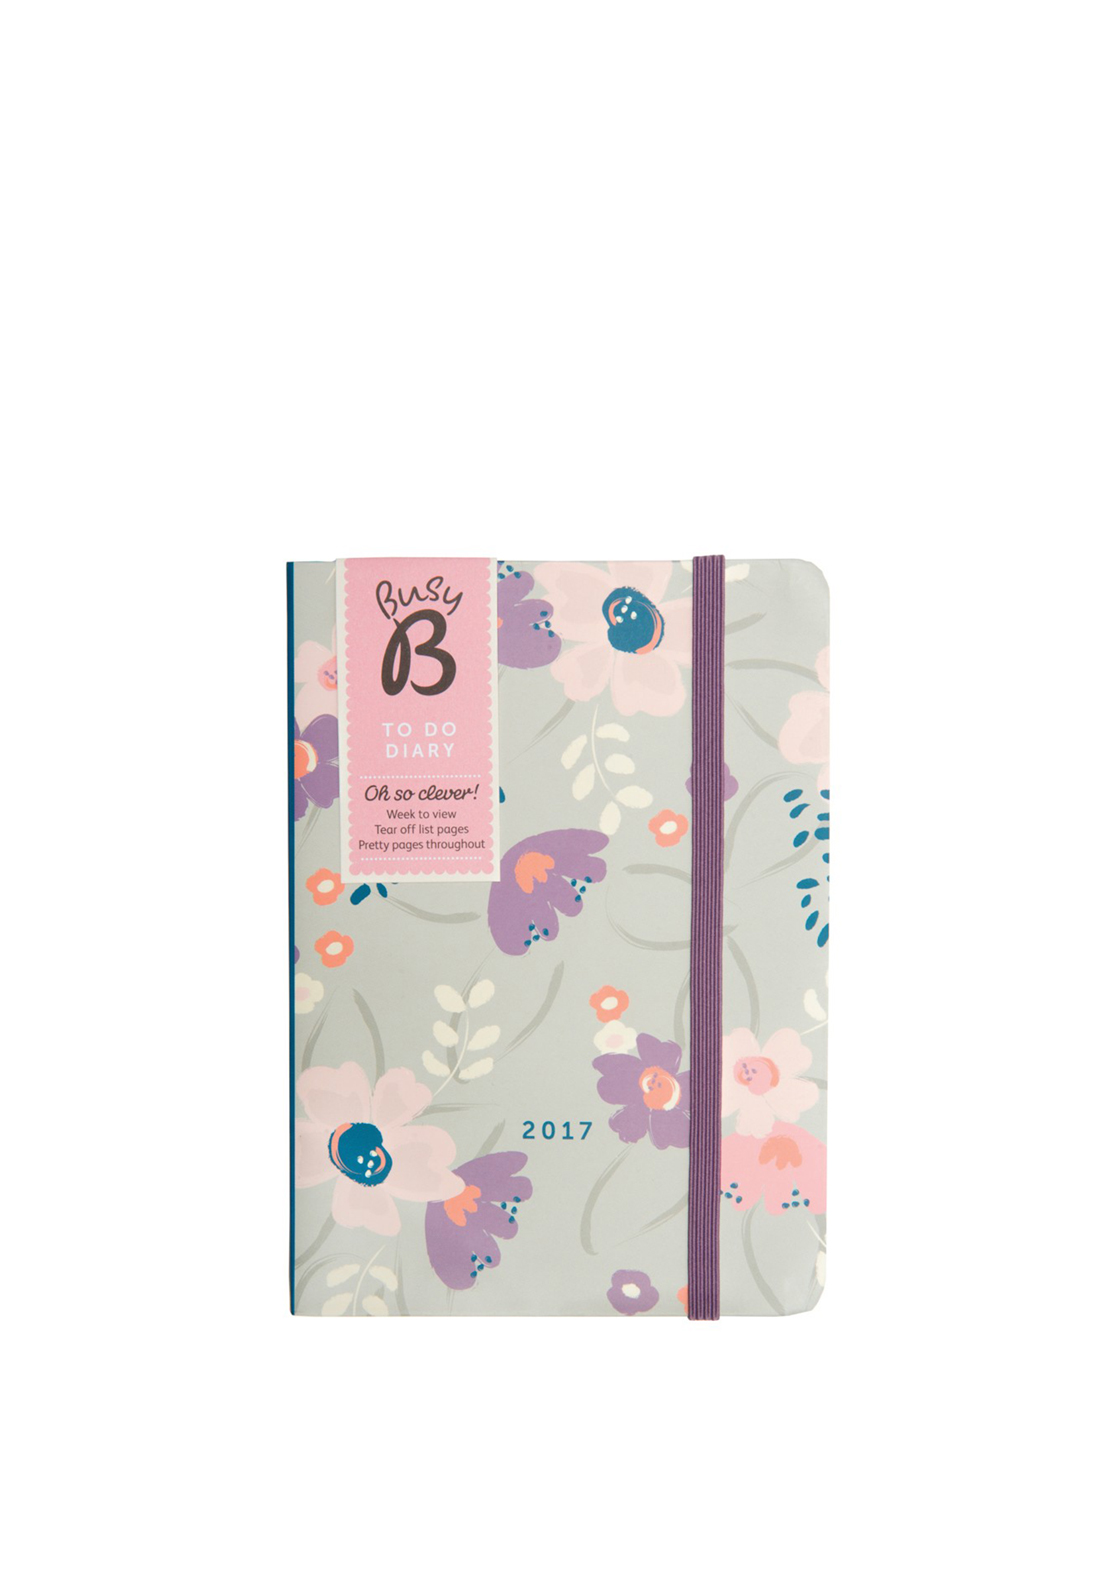 Busy B To Do Diary 2017